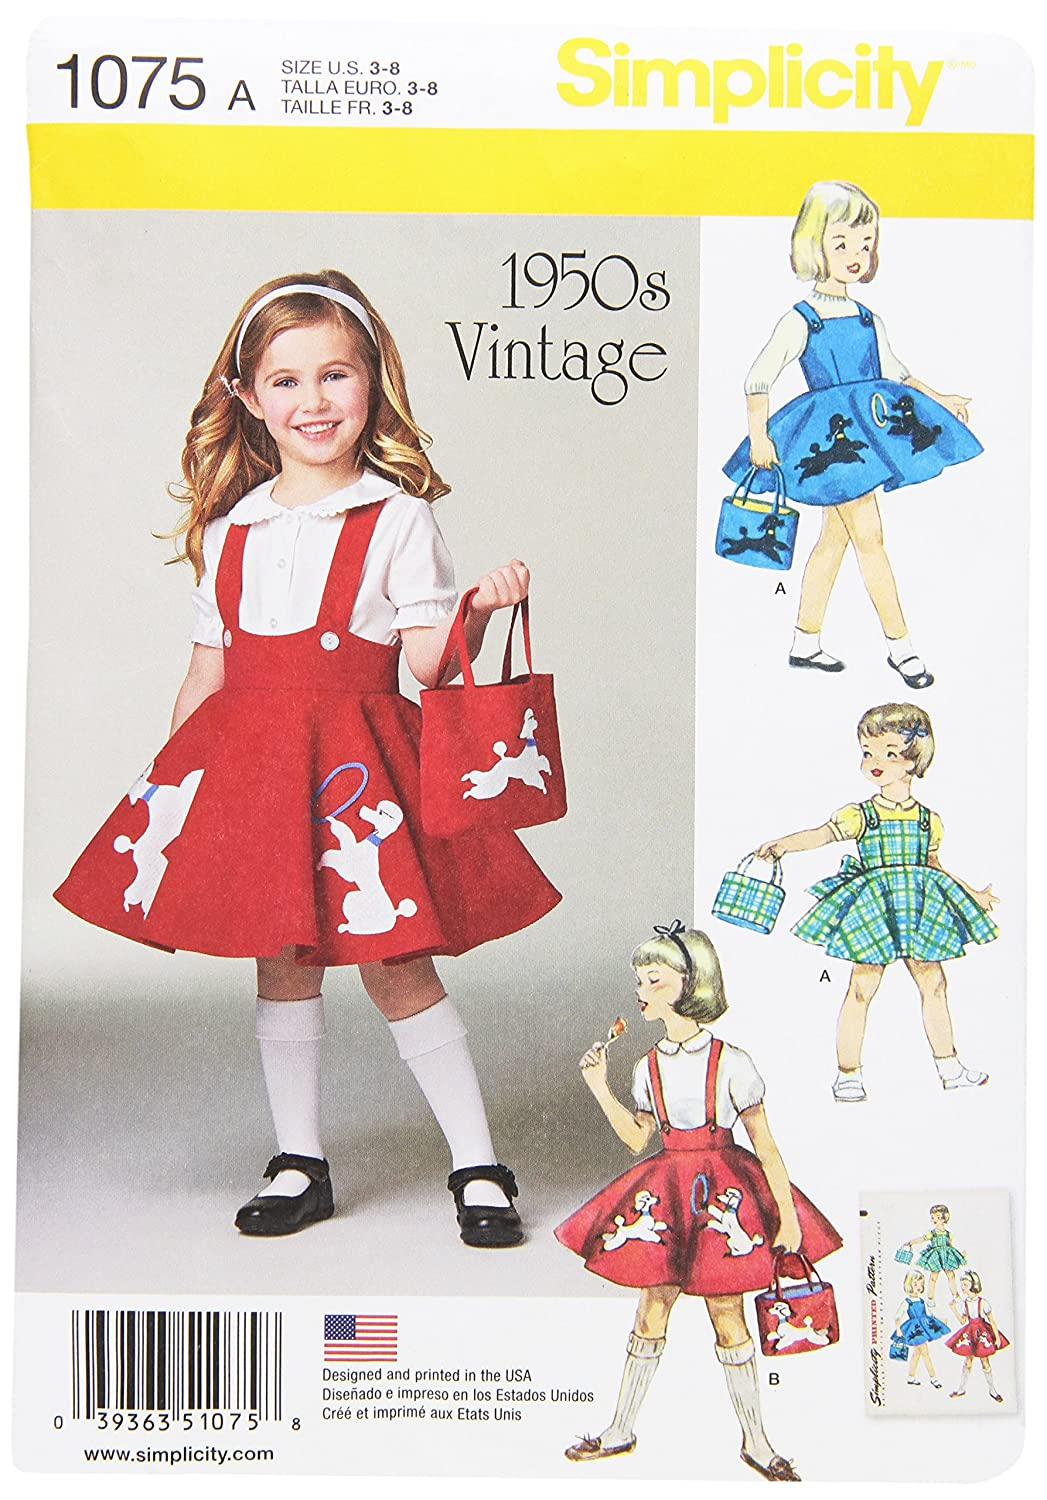 Simplicity 1075 Child's Jumper, Skirt & Bag Sewing Template, Size A (3-4-5-6-7-8) Outlook Group